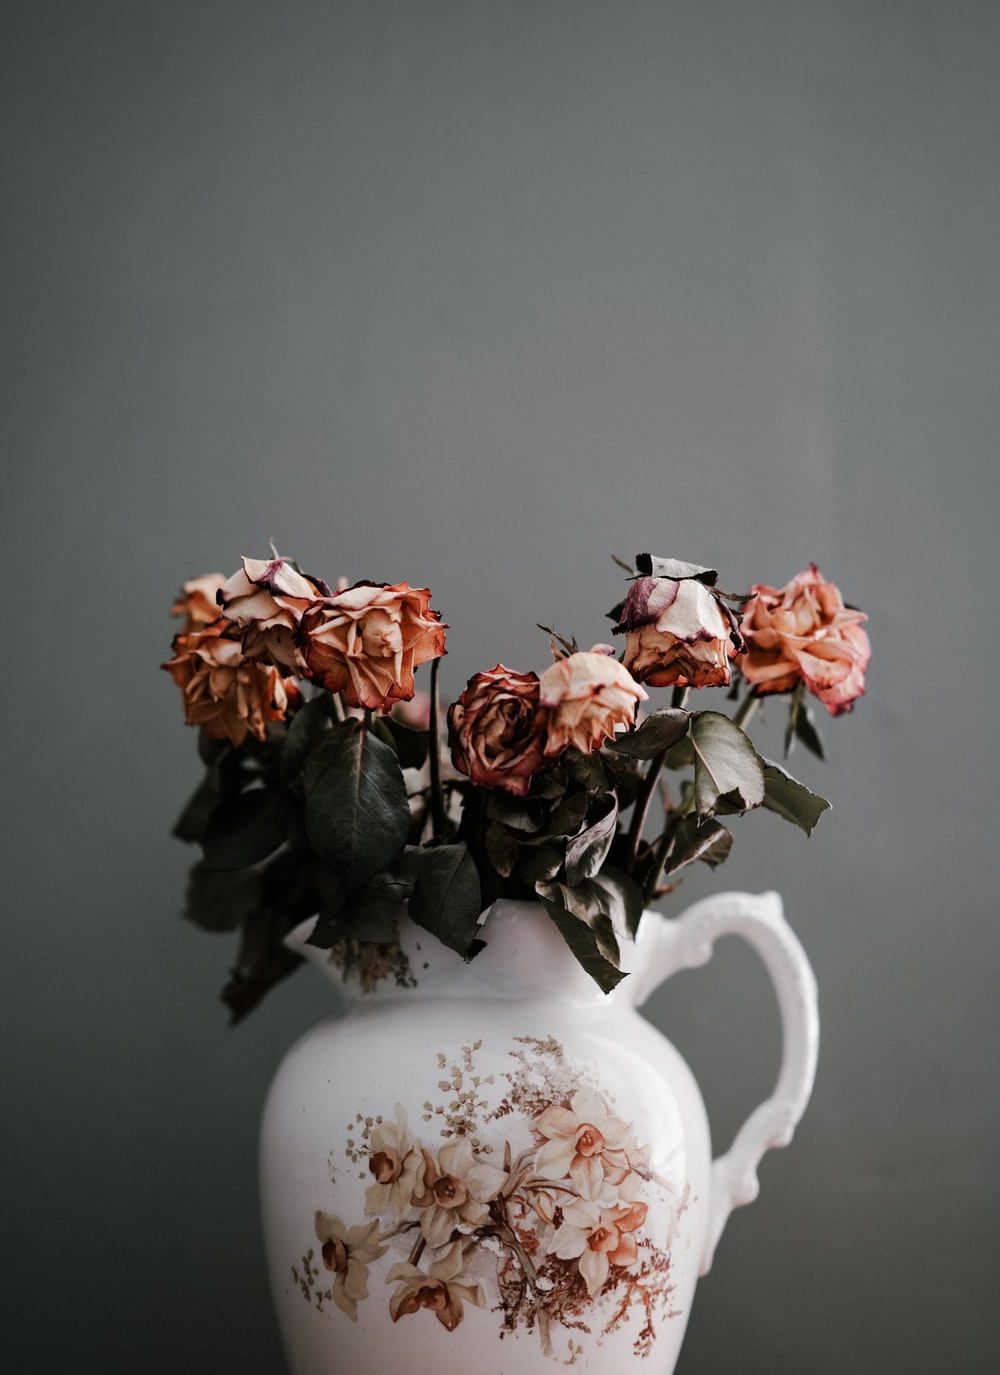 Dead Flowers Pictures Download Free Images On Unsplash